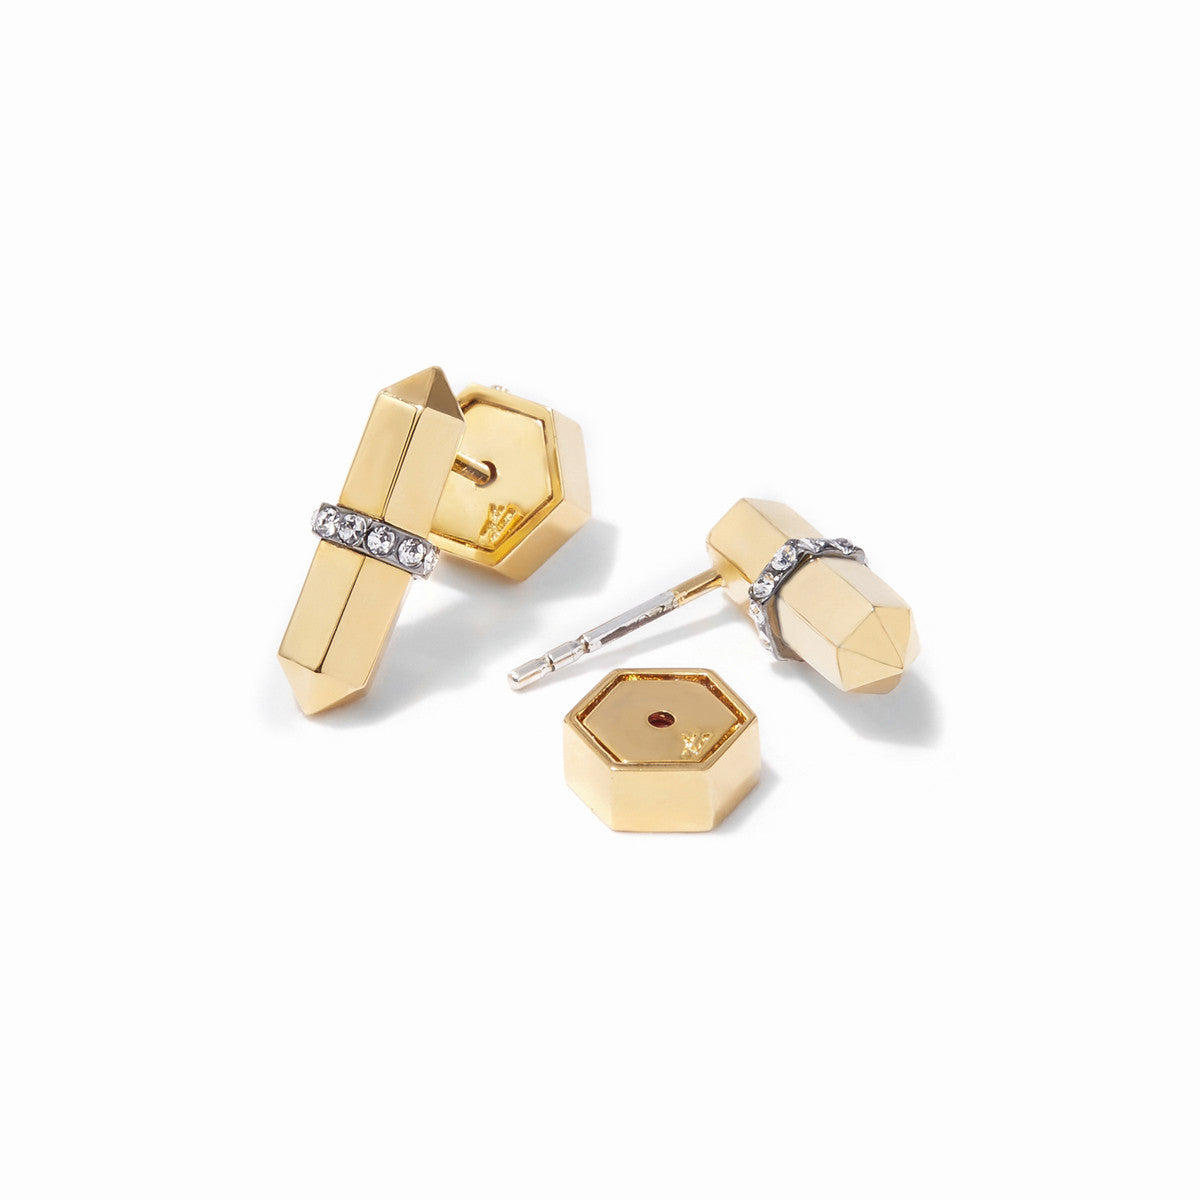 Colette Studs - 2 Tone Gold and Hematite